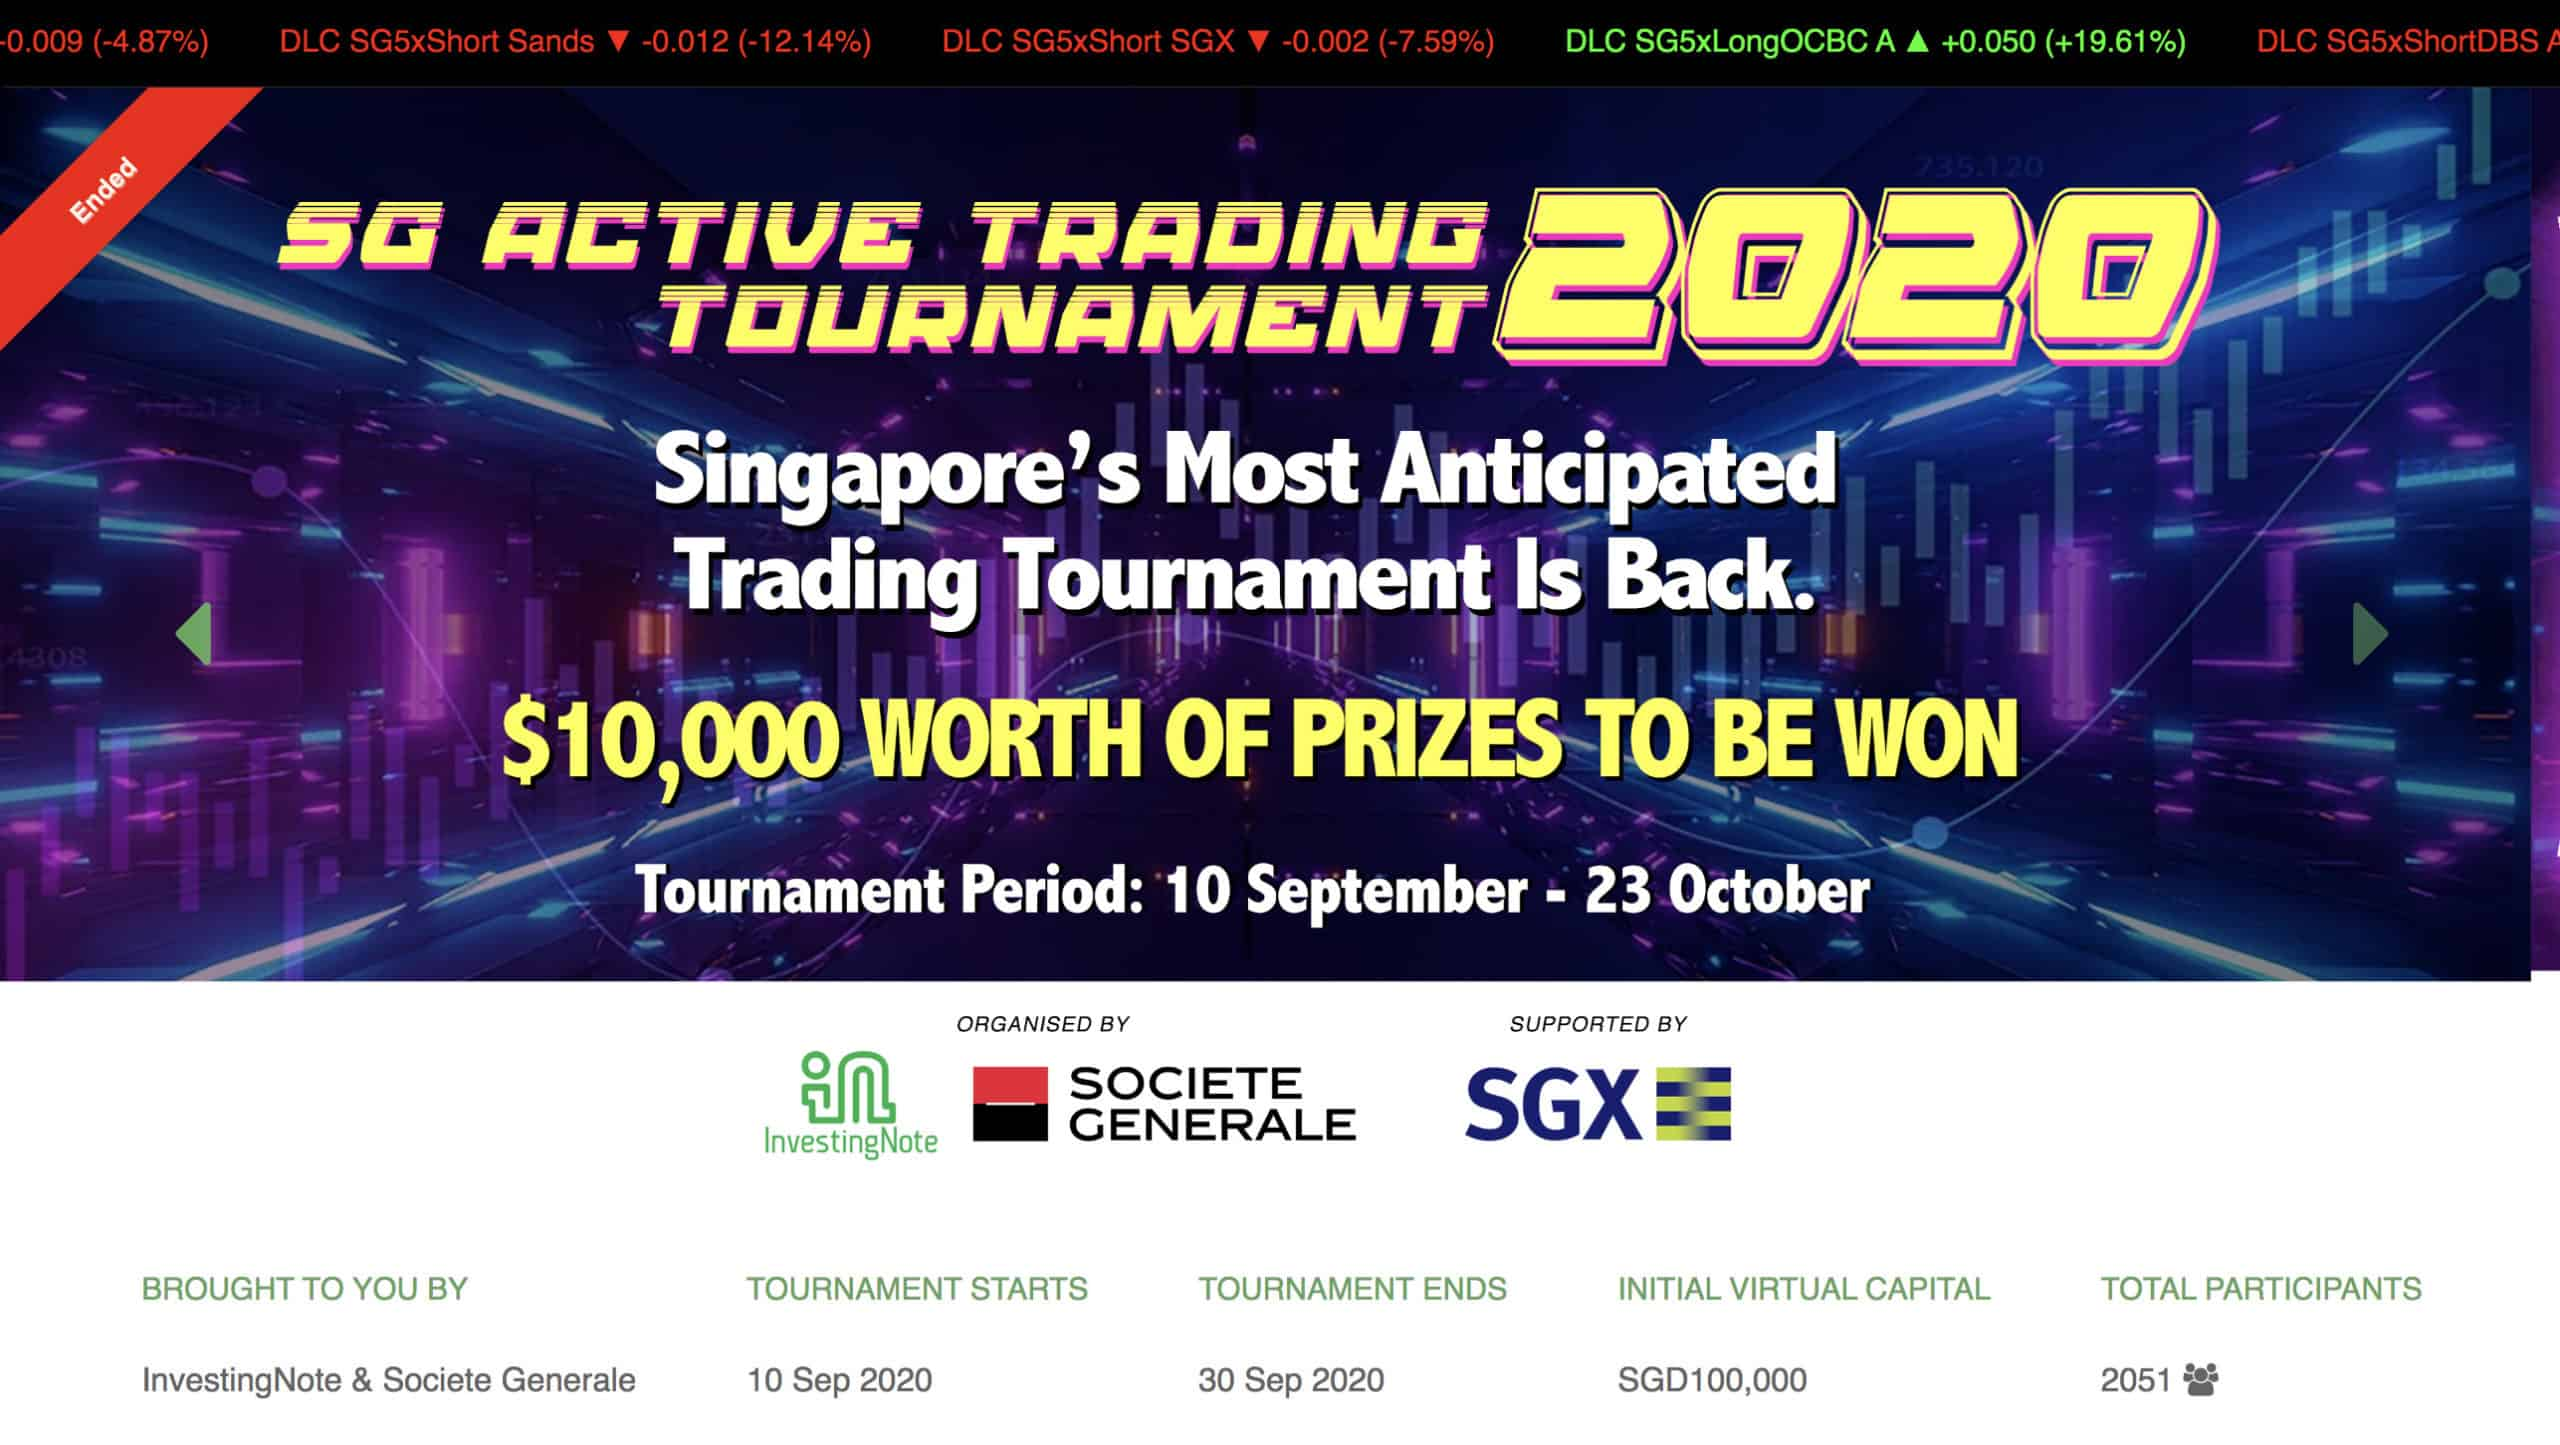 Congratulations to our Top 3 Finalists! SG ACTIVE TRADING TOURNAMENT 2020